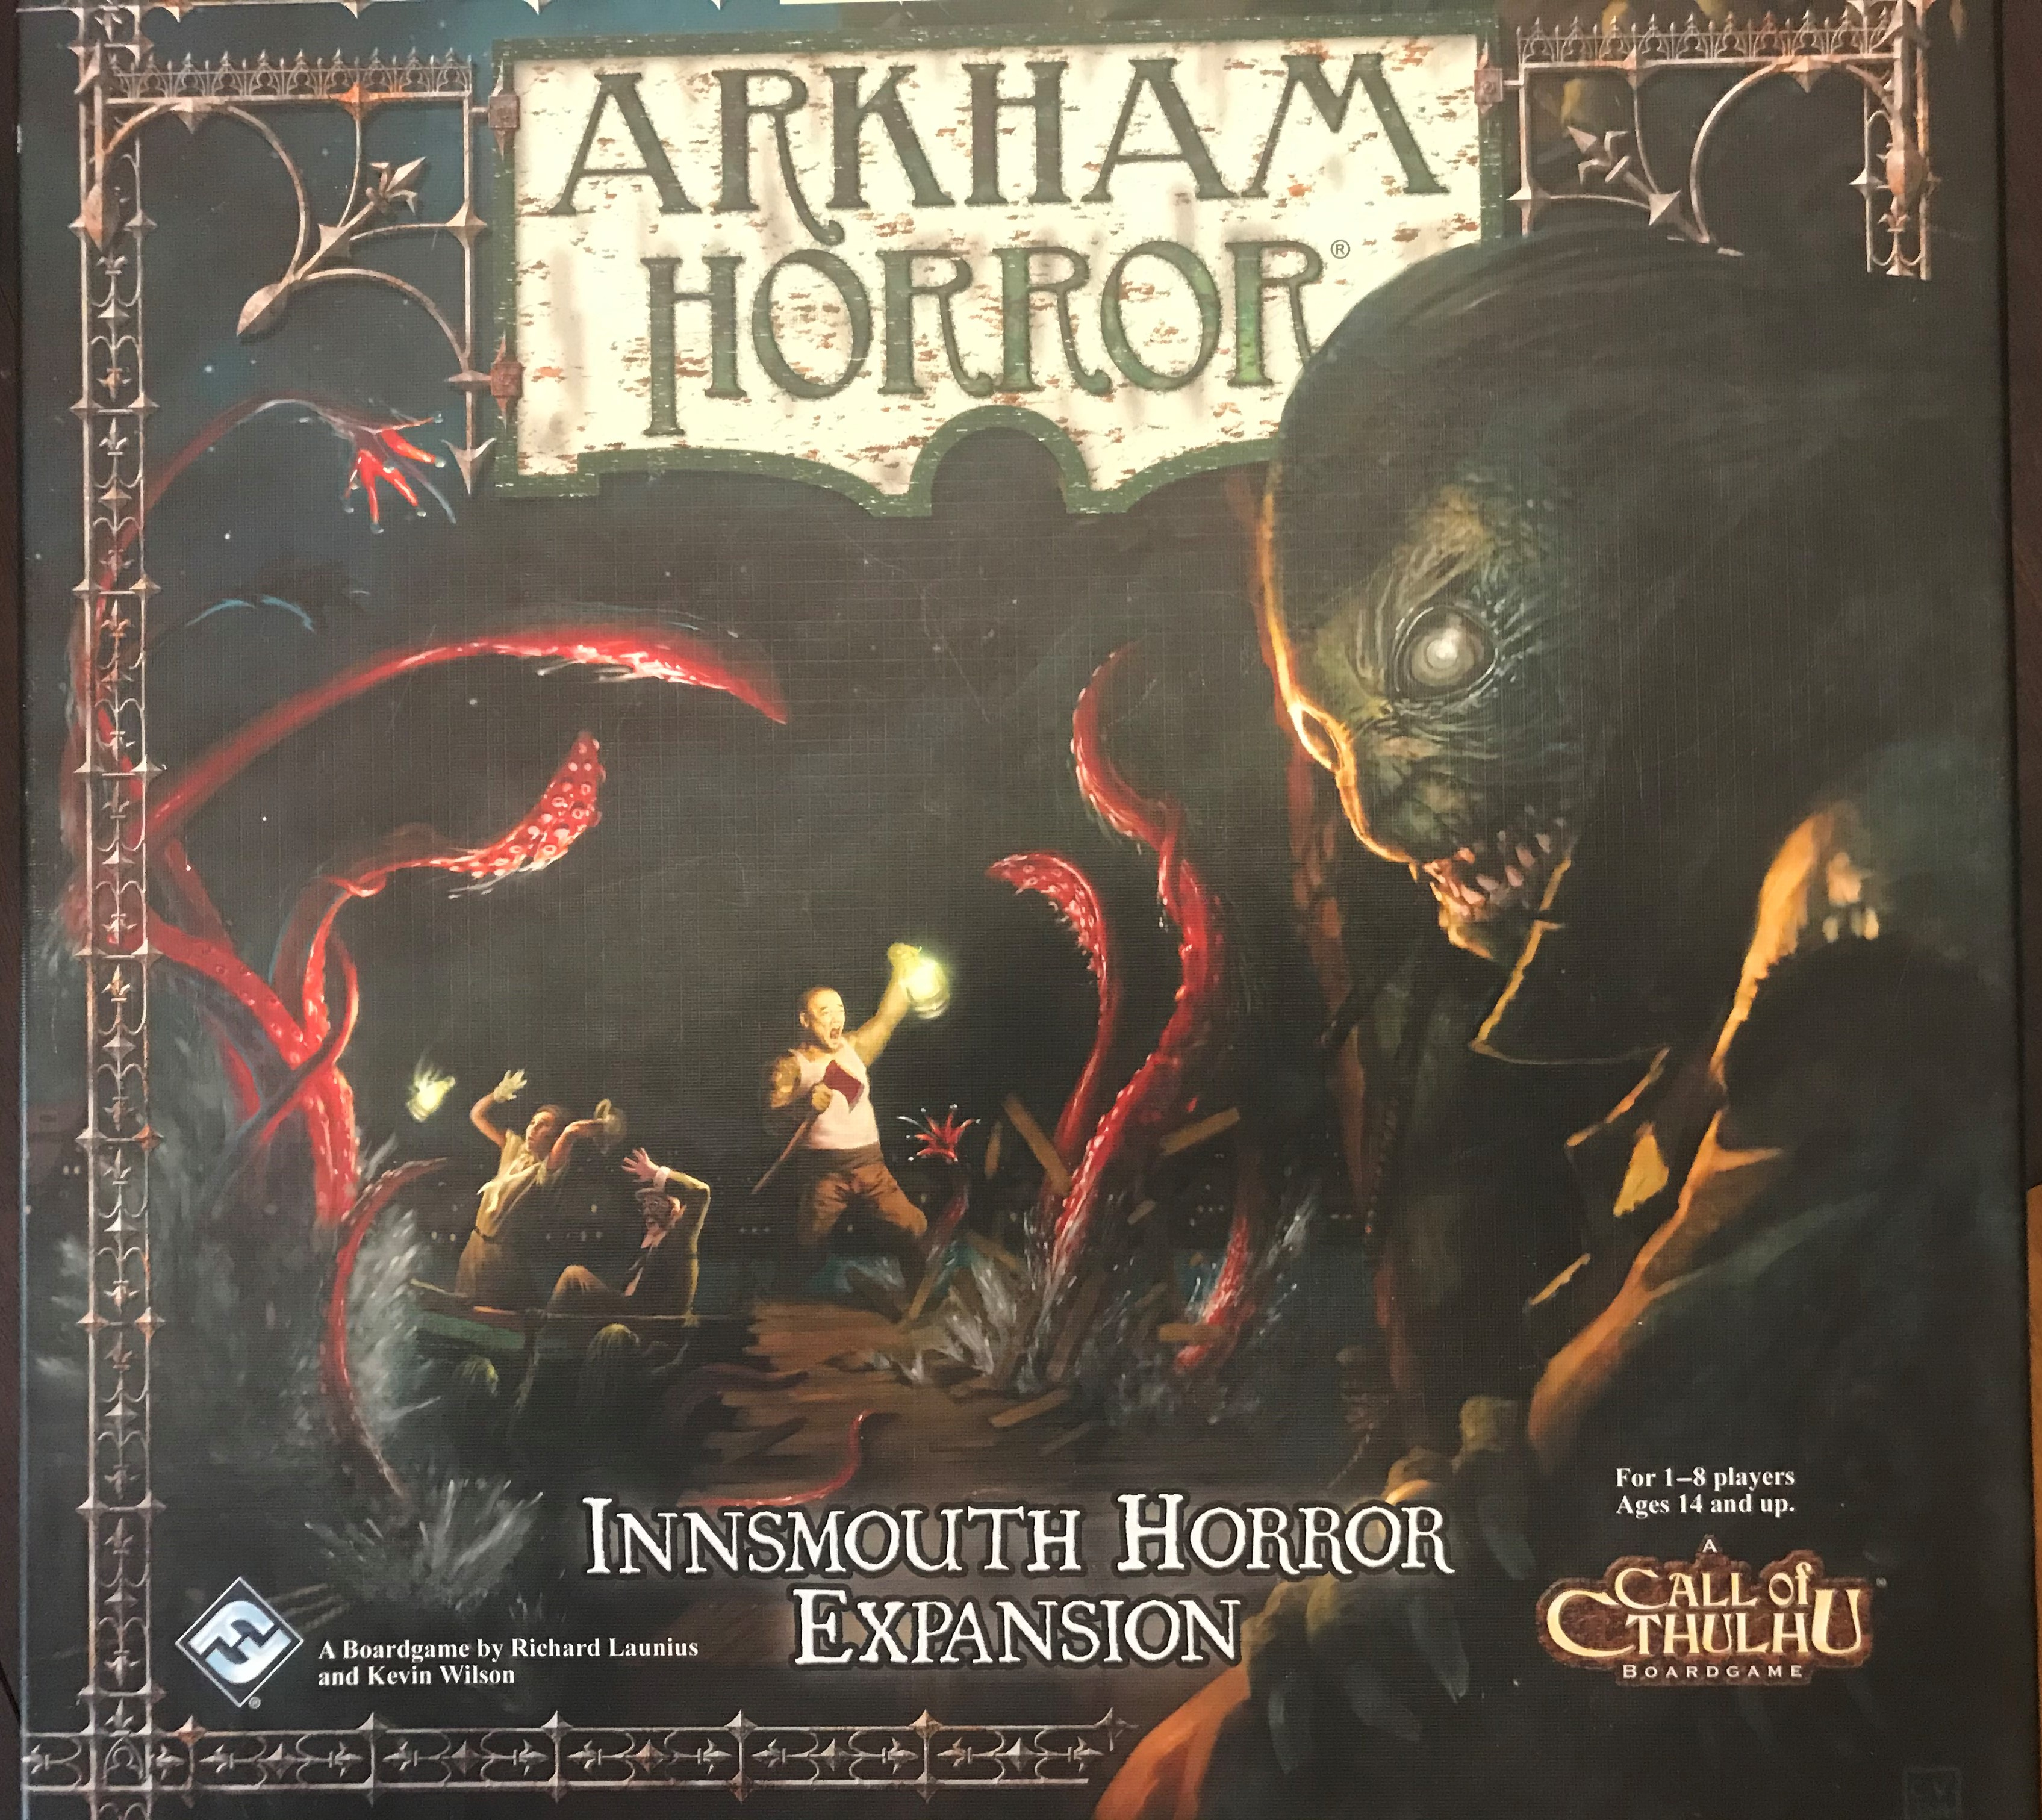 Image shows three investigators trying to find their way through a tentacled forest. In the foreground a monster gazes over their shoulder at us. Cover text says, the classic game of Lovecraftian adventure. Arkham Horror. Innsmouth Horror Expansion. A boardgame by Richard Launius and Kevin Wilson. For 1-8 players, Ages 14 and up. A Call of Cthulhu board game.